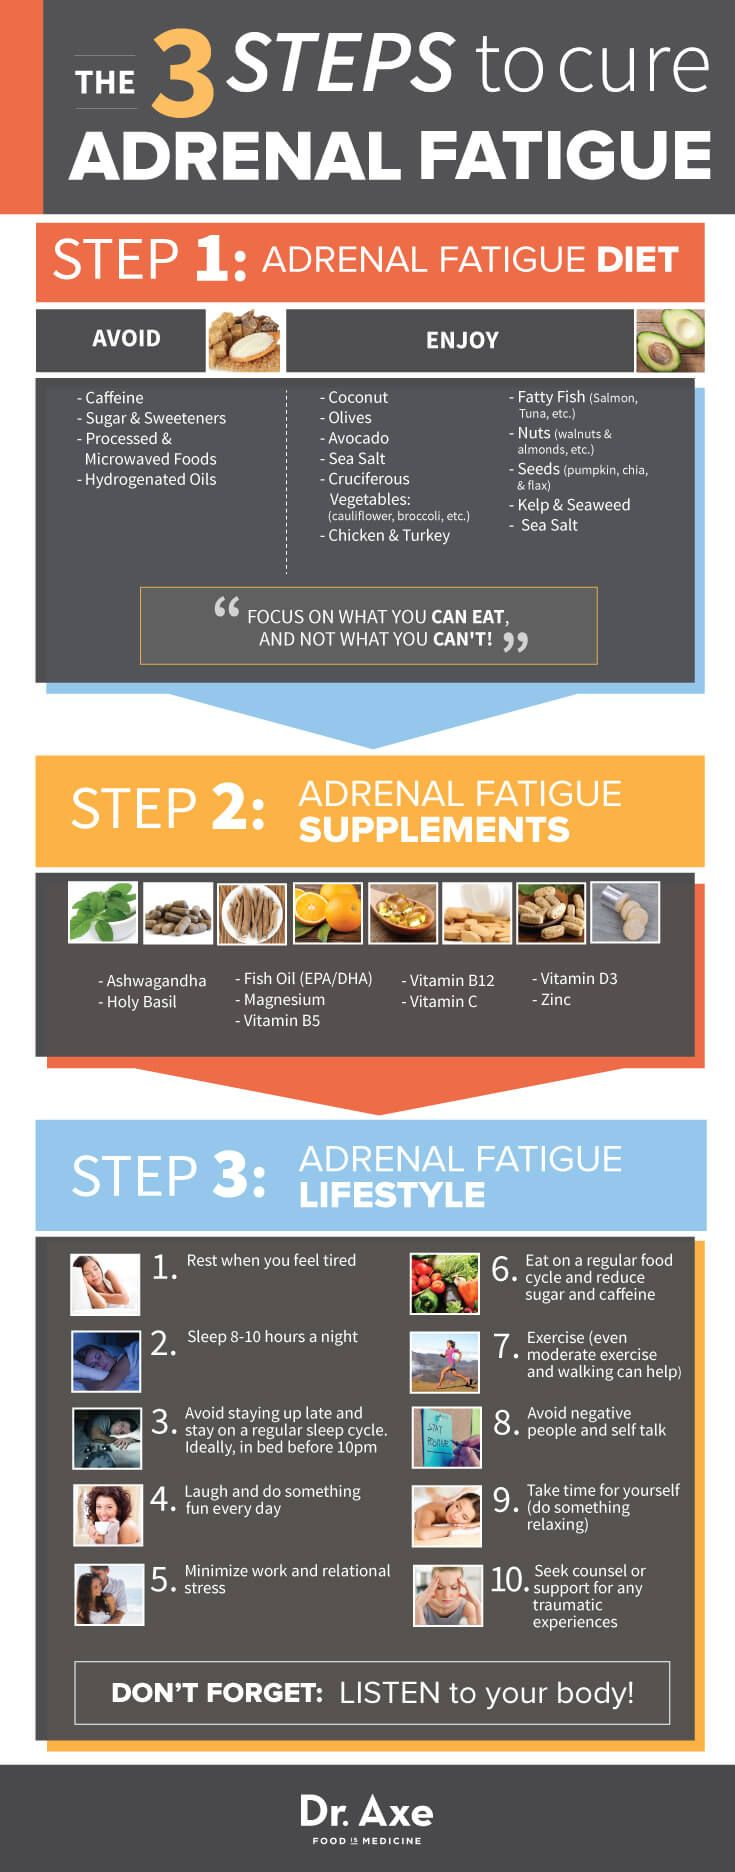 How To Cure Adrenal Glands Naturally